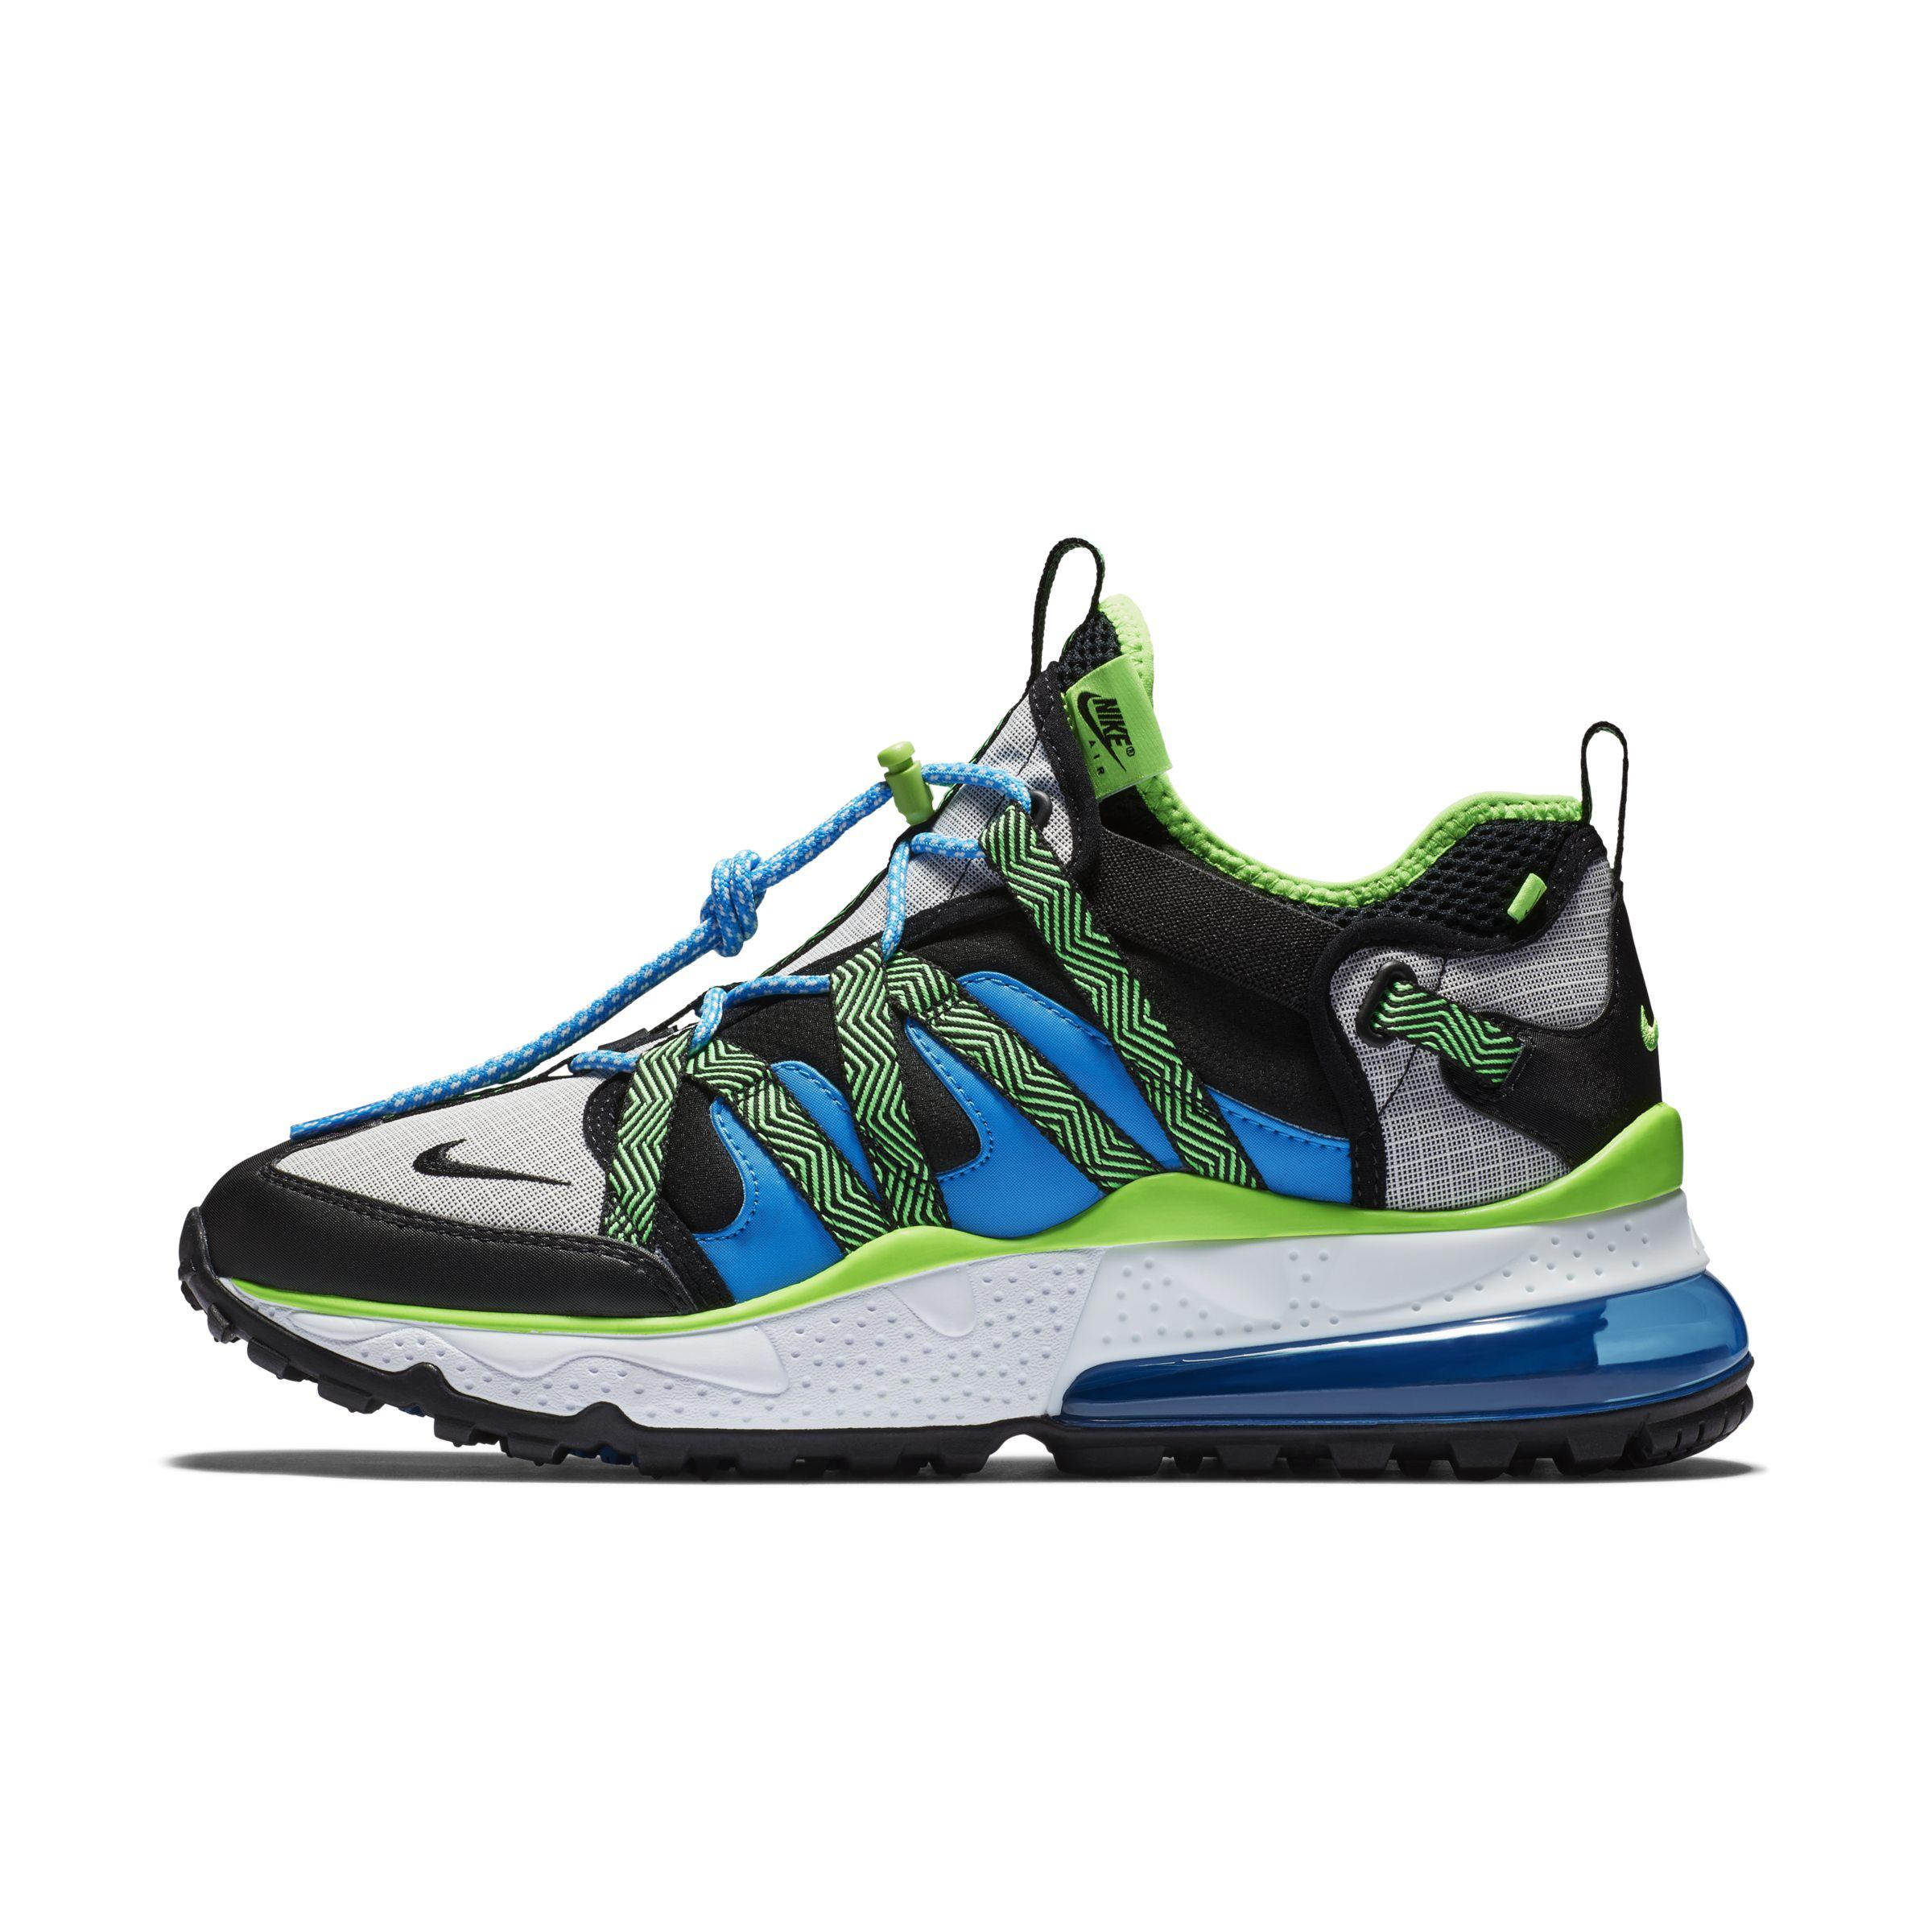 Nike Air Max 270 Bowfin Shoe in Black for Men - Lyst 0e607ced5